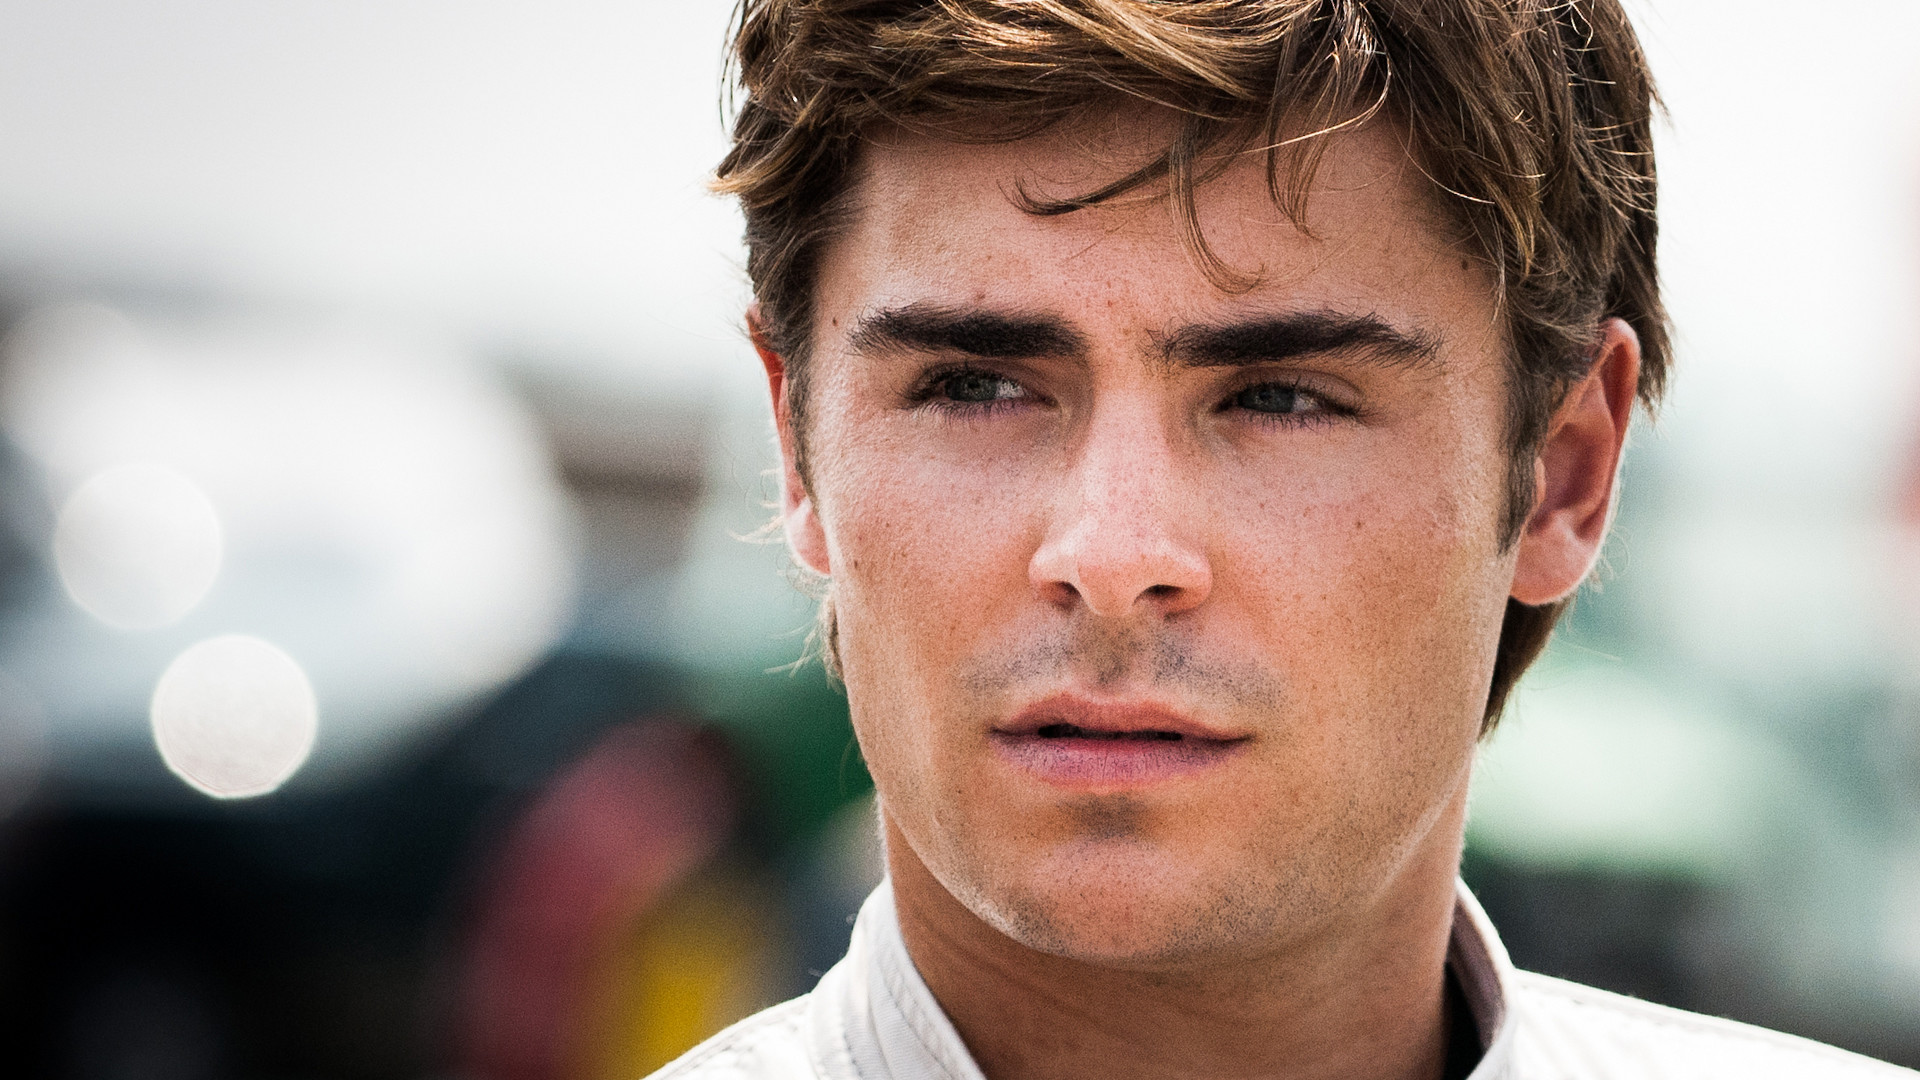 Res: 1920x1080, HD Zac Efron Wallpapers 01 HD Zac Efron Wallpapers 02